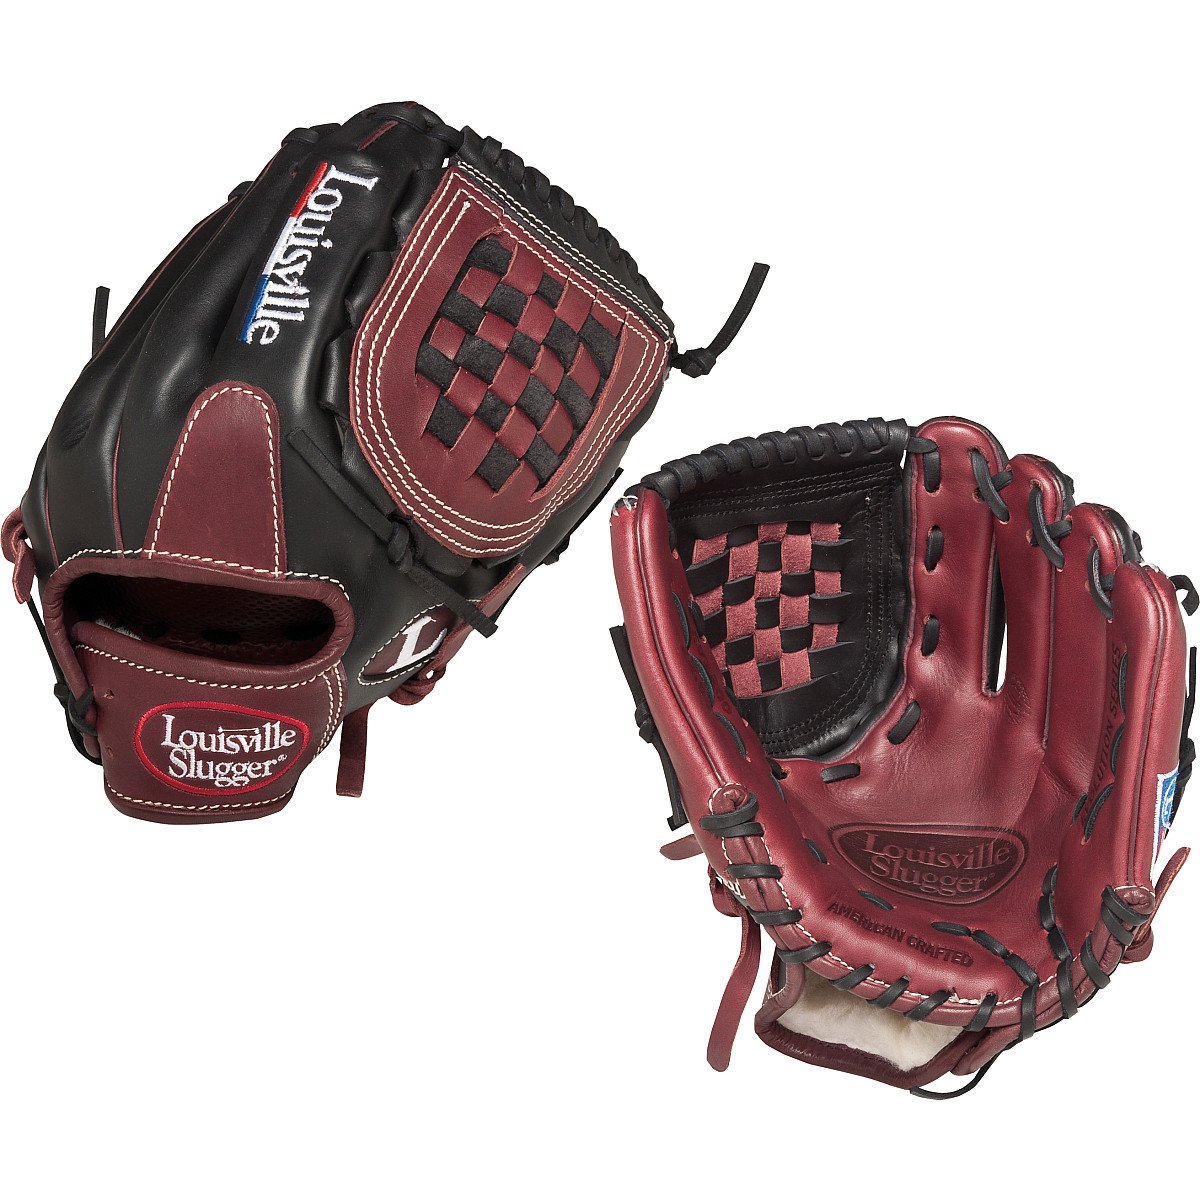 louisville-slugger-ev1200-evolution-series-12-baseball-glove-right-handed-throw EV1200-Right Handed Throw Louisville Slugger New Louisville Slugger EV1200 Evolution Series 12 Baseball Glove Right Handed Throw